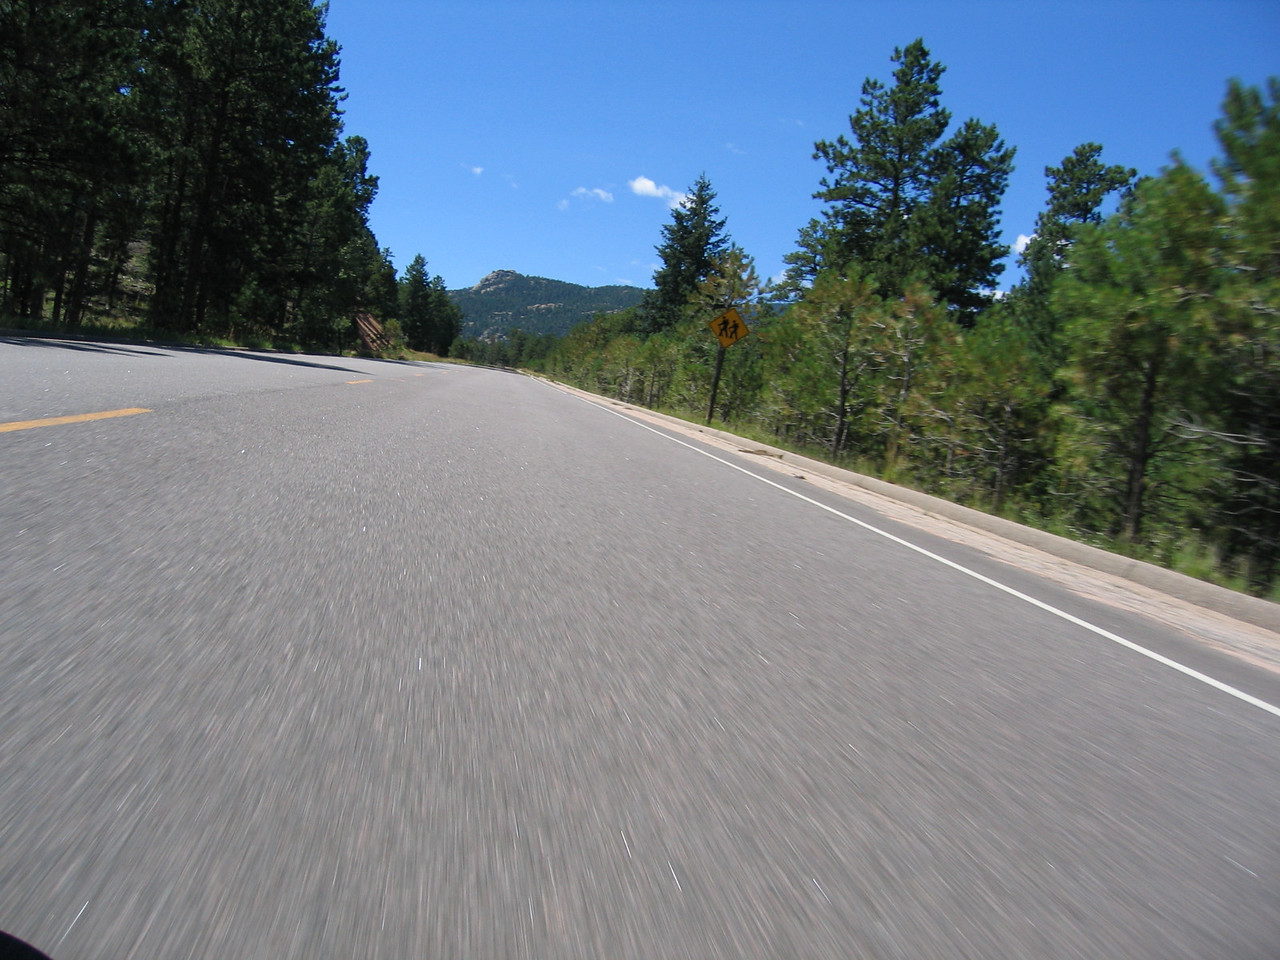 Leaving Breckenridge, we head for the next pass:  Hoosier Pass.  During our ascent, we encounter some traffic, so I end up making a few passes on the double yellow, eventually cutting off a mini-van as I encounter a large pickup heading straight for me.  I don't feel bad, as the mini-van had plenty of opportunity to use a pull-out and let the vehicles behind it pass by safely.